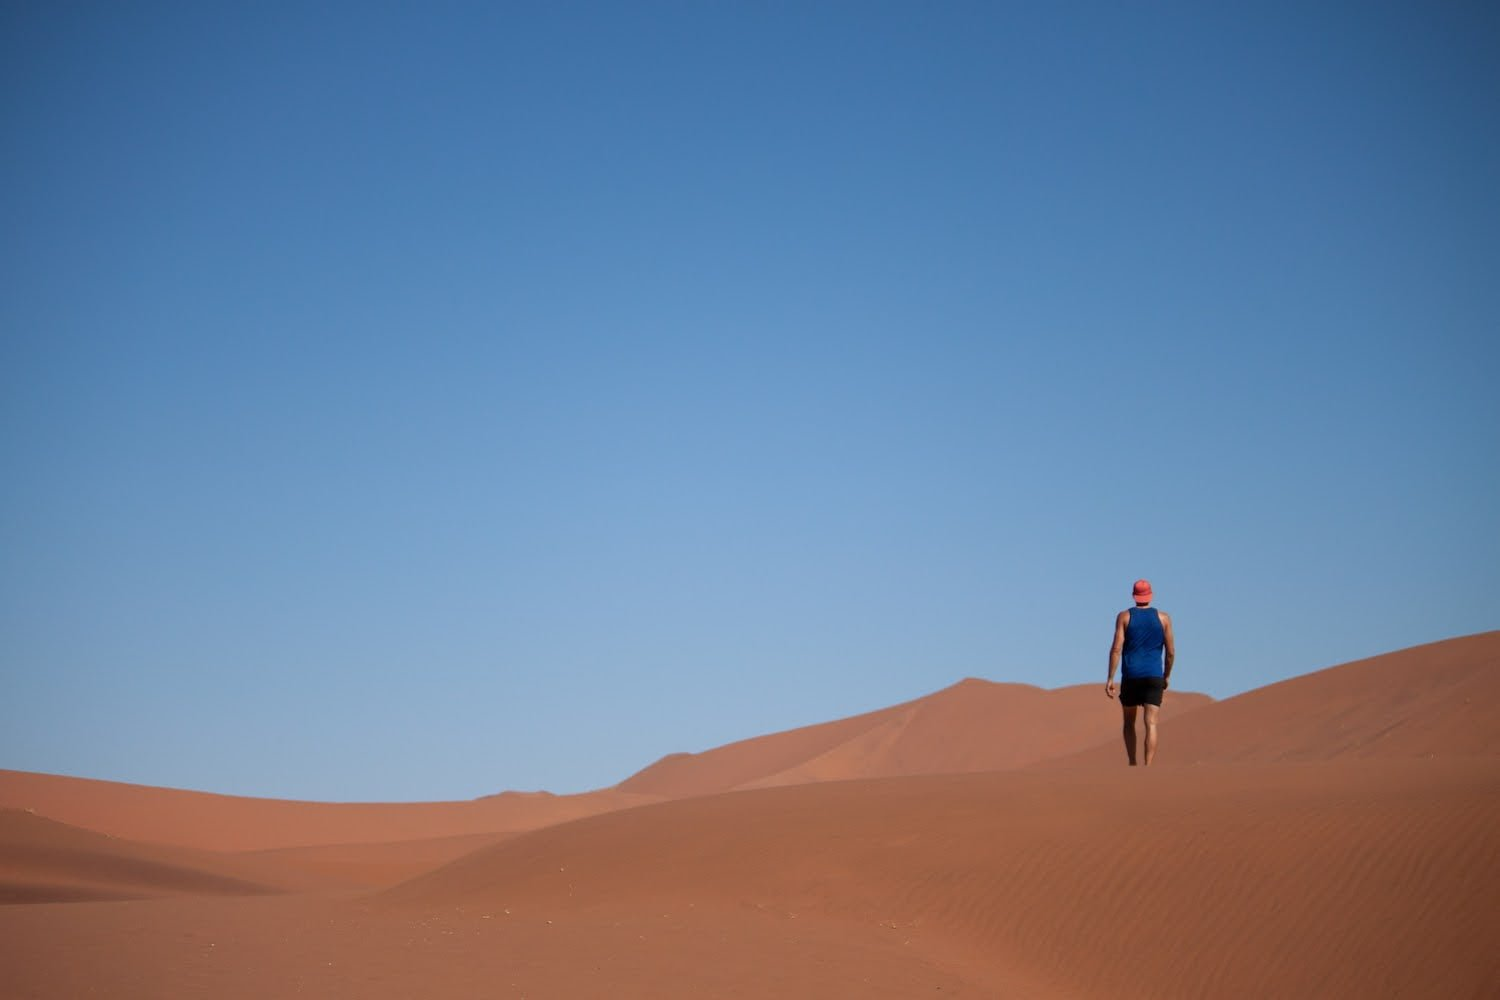 Questions to ask yourself about life for perspective and direction cover image of me lost in desert